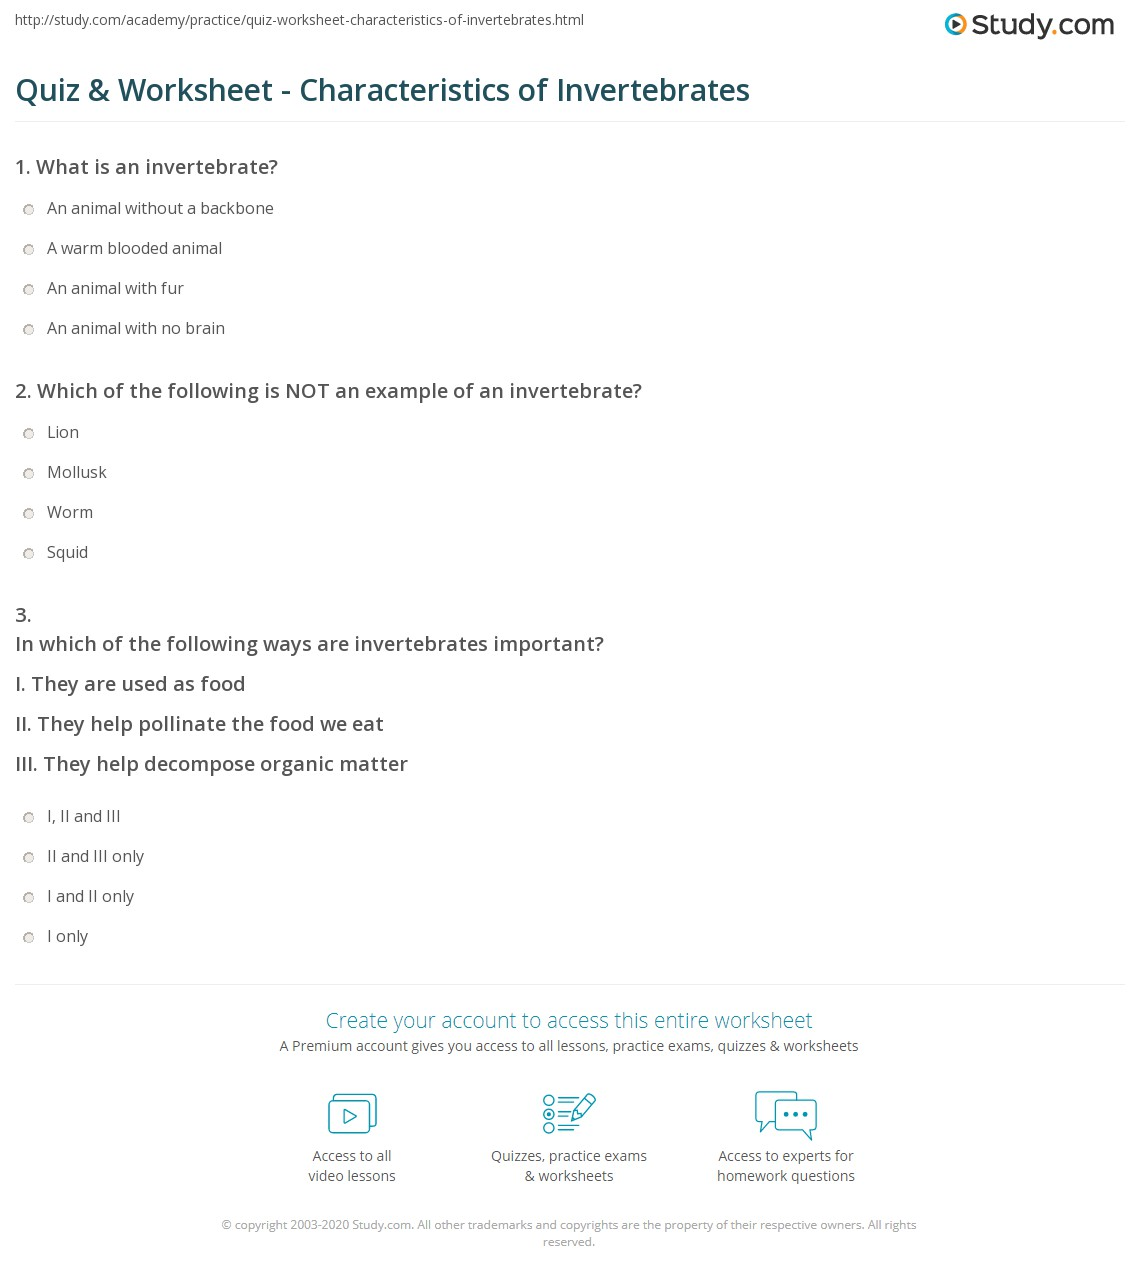 Holt Mathematics Worksheets with Answers   Briefencounters Worksheet as well Six Kingdoms of Life Worksheet   Worksheet Answers   Projects to Try further Summer Images Secondary On Biology Printable Worksheets 10th moreover Best Characteristic   ideas and images on Bing   Find what you'll in addition Charateristics of Life   Answer Key   Name Date Period Score likewise Ch  1  Characteristics of Life moreover Biology Worksheets   holidayfu furthermore characteristics of life worksheet – r1trans likewise Characteristics and clification of living organisms as well  besides  besides Quiz   Worksheet   Characteristics of Invertetes   Study likewise CHARACTERISTICS OF ORGANISMS LESSON PLAN – A  PLETE SCIENCE LESSON further  in addition Characteristics of Life   Read     Biology   CK 12 Foundation together with Printable Worksheets for Teachers  K 12    TeacherVision. on biology characteristics of life worksheet